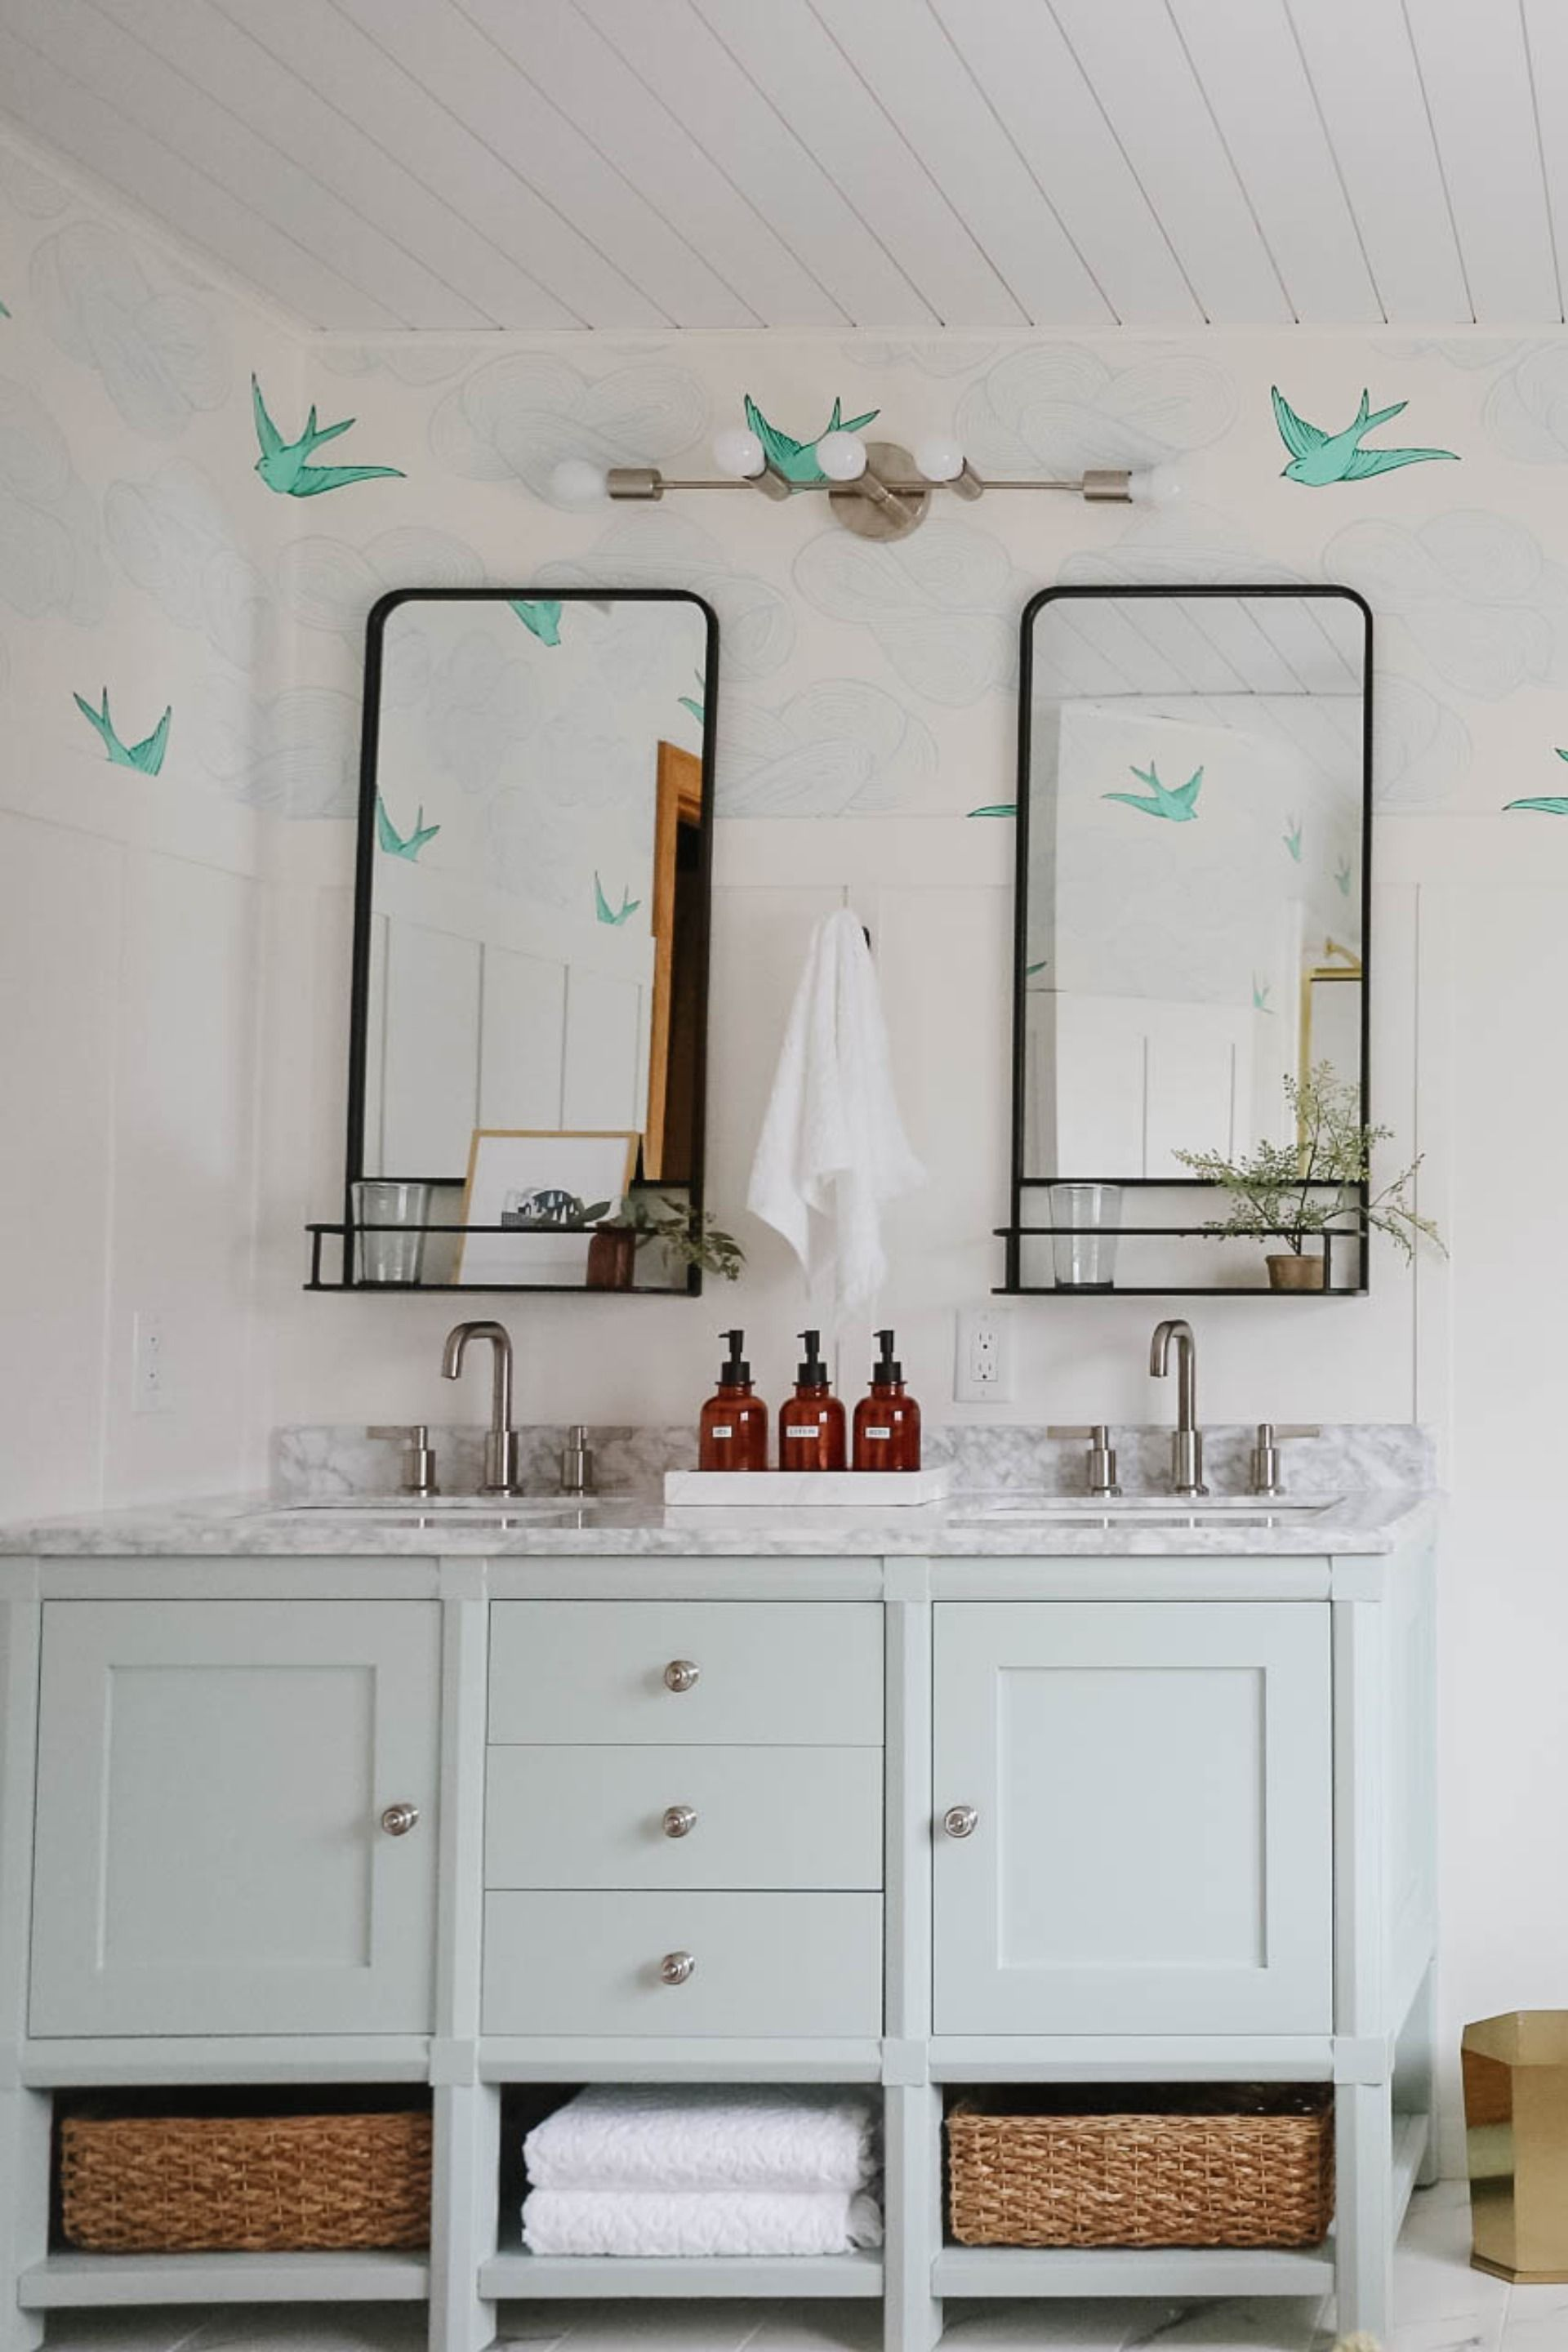 Pin On Bathroom Ideas And Inspiration